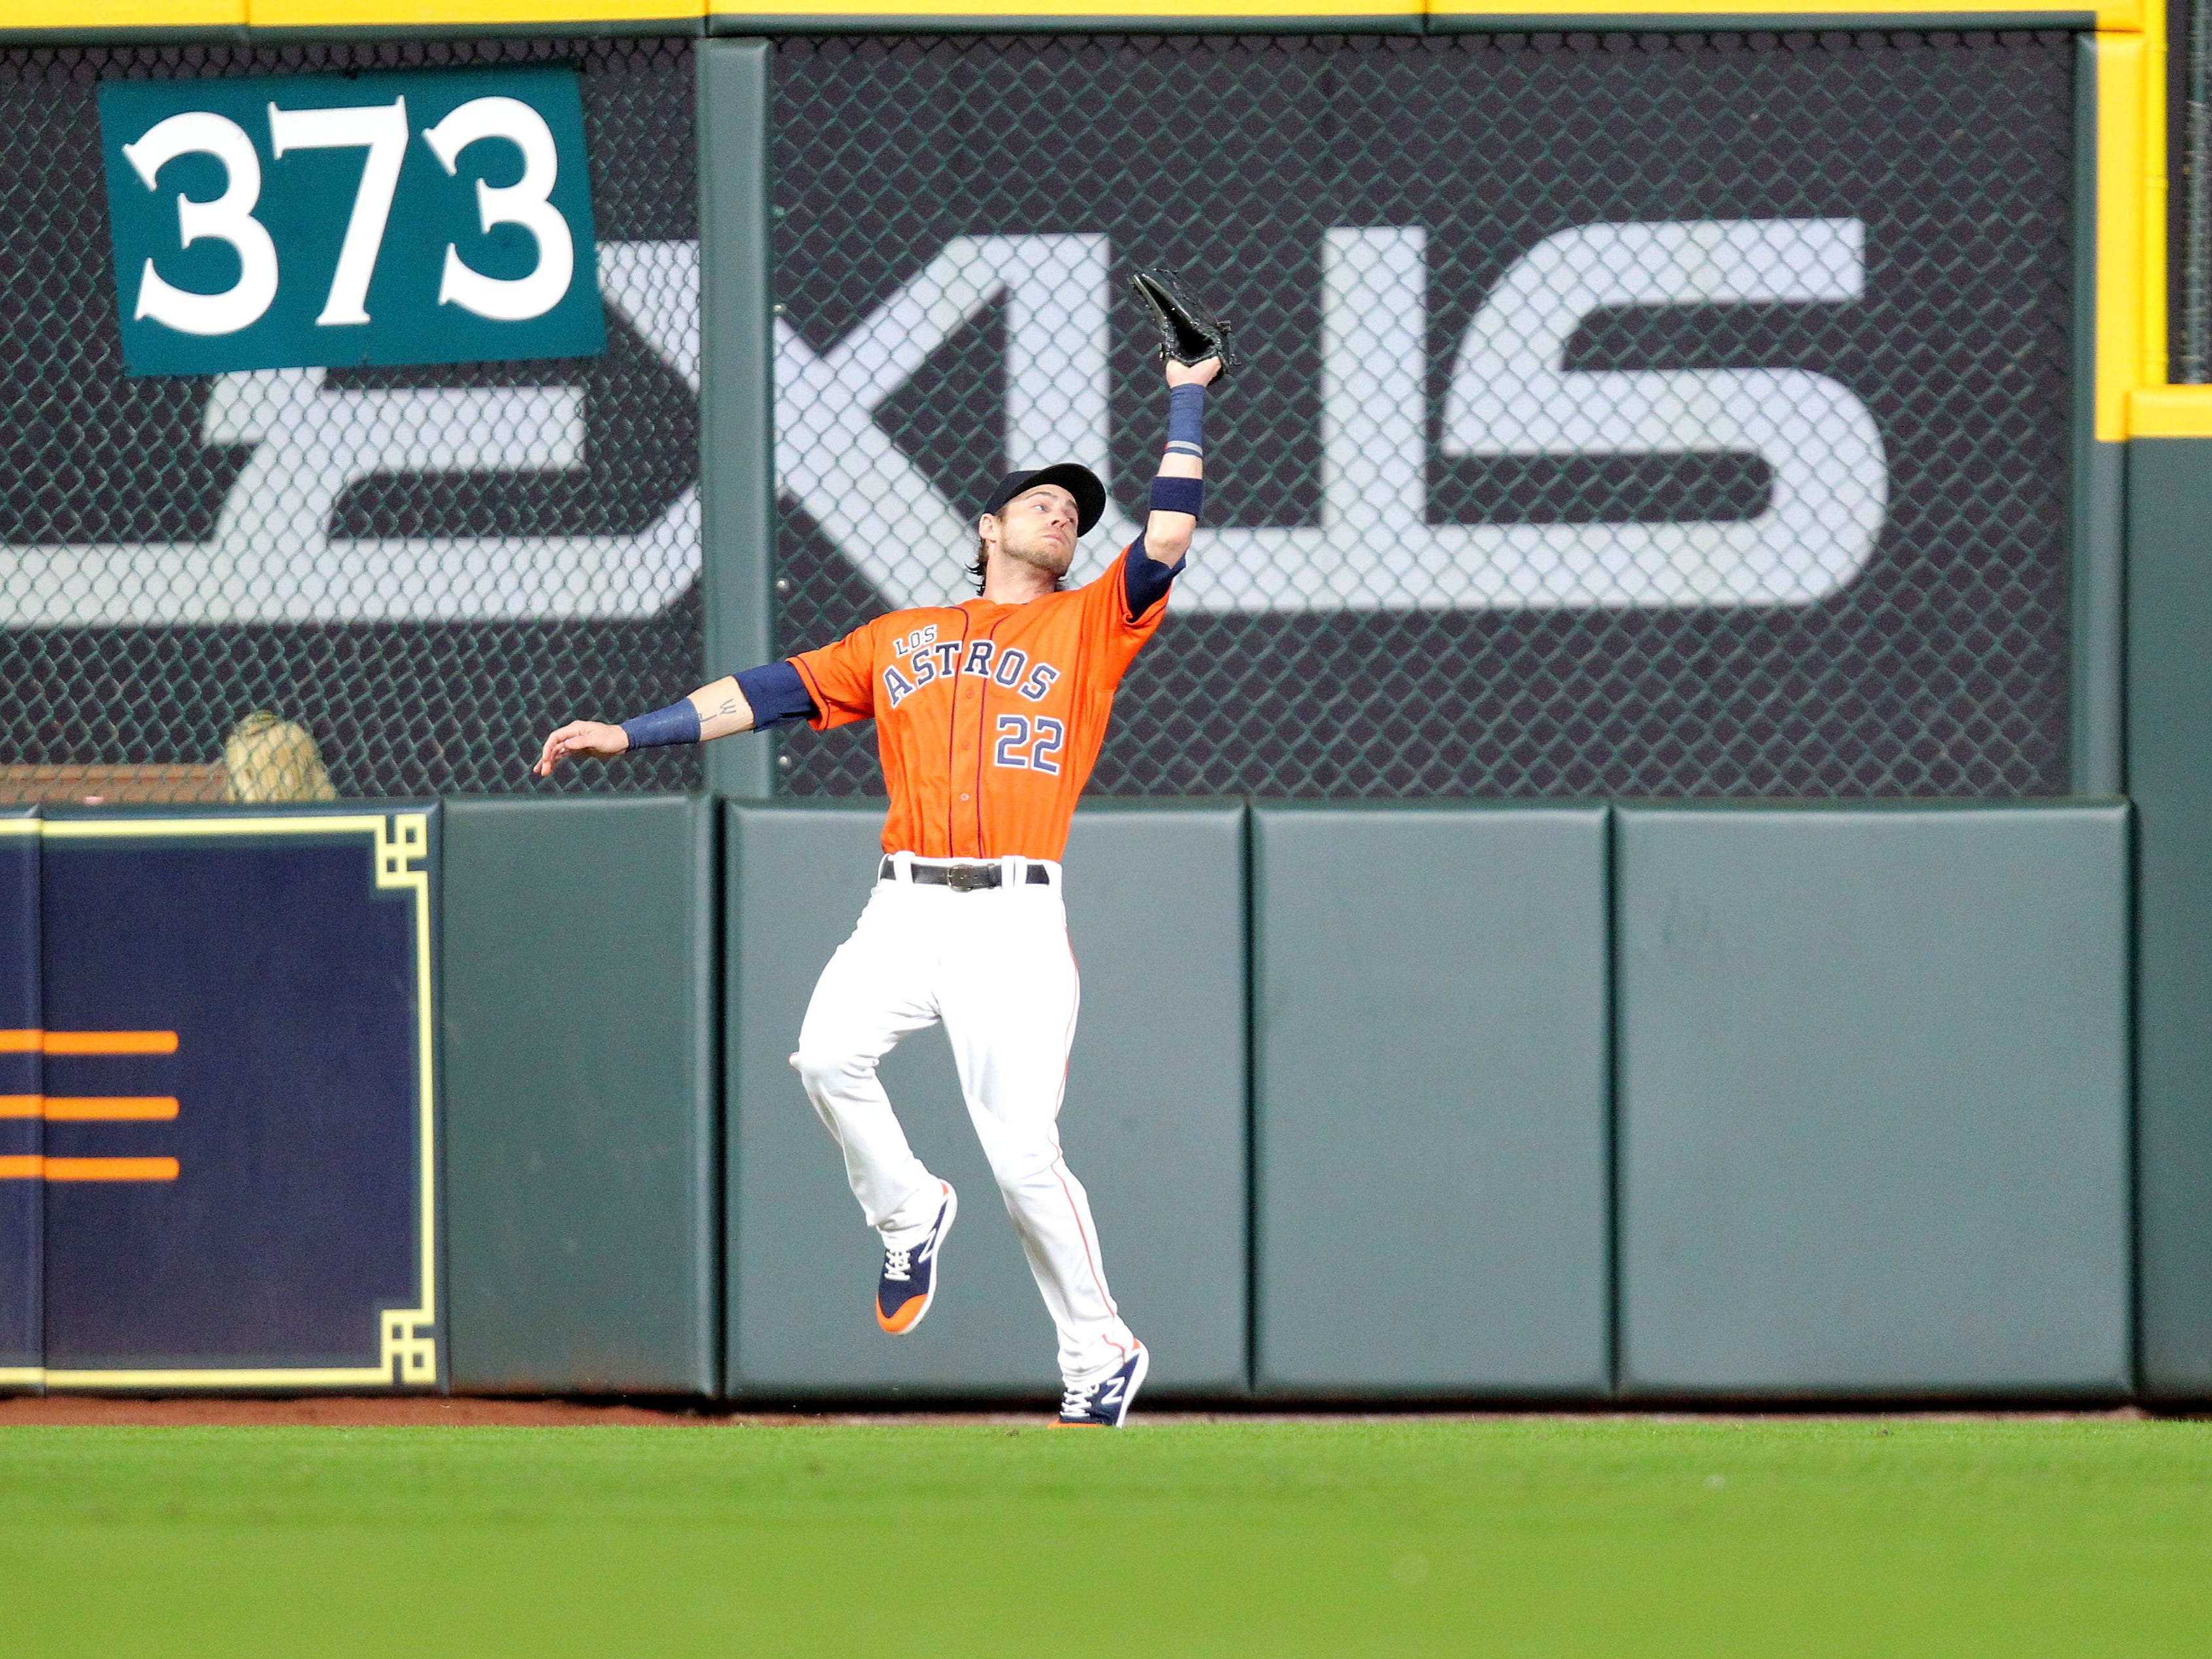 Sep 14, 2018: Houston Astros right fielder Josh Reddick (22) catches a fly ball for an out to retire the side against the Arizona Diamondbacks during the first inning at Minute Maid Park.